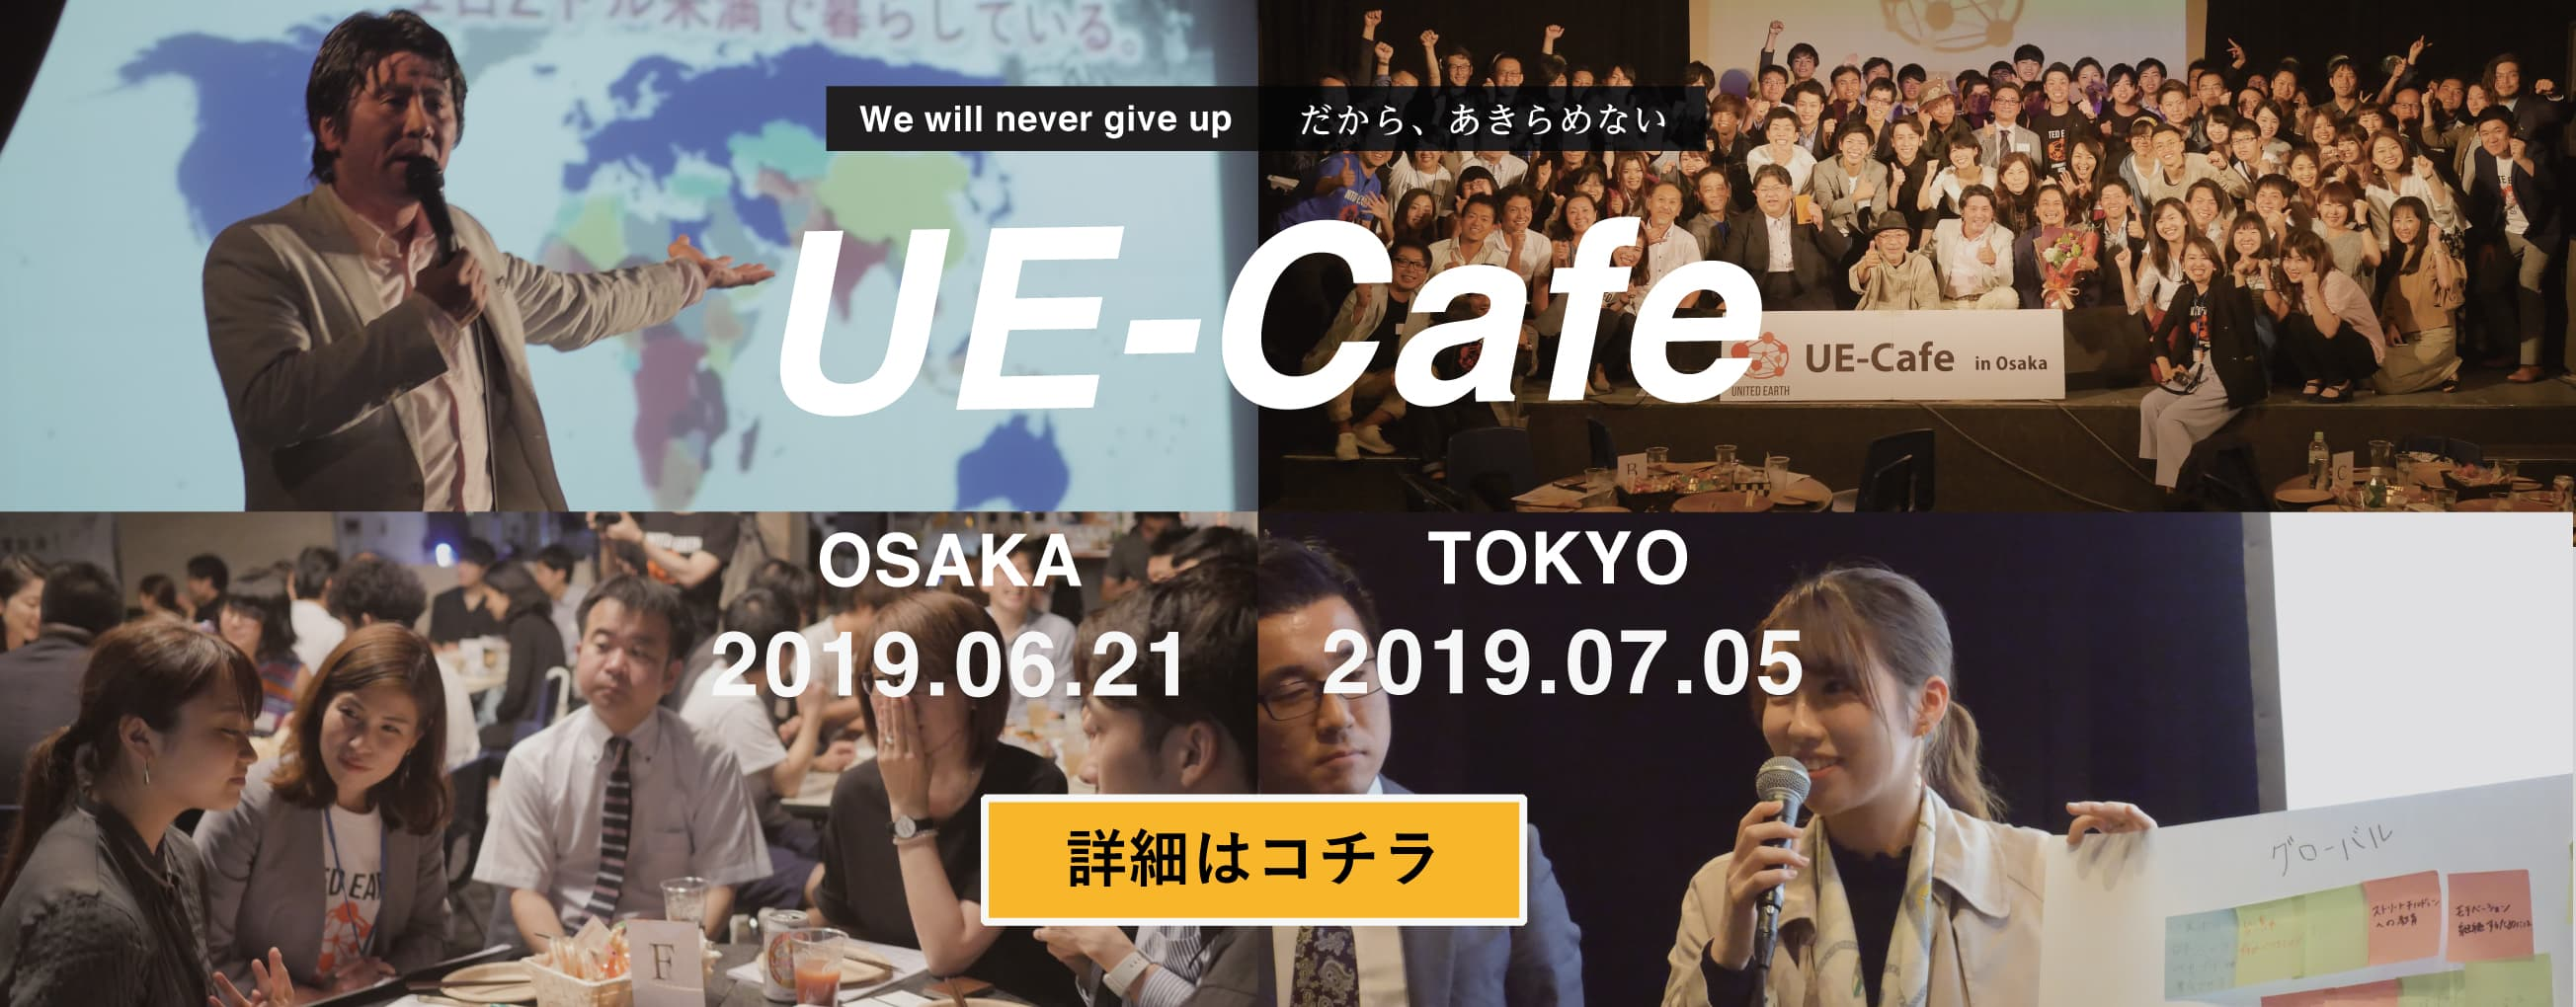 UE-Cafe Information